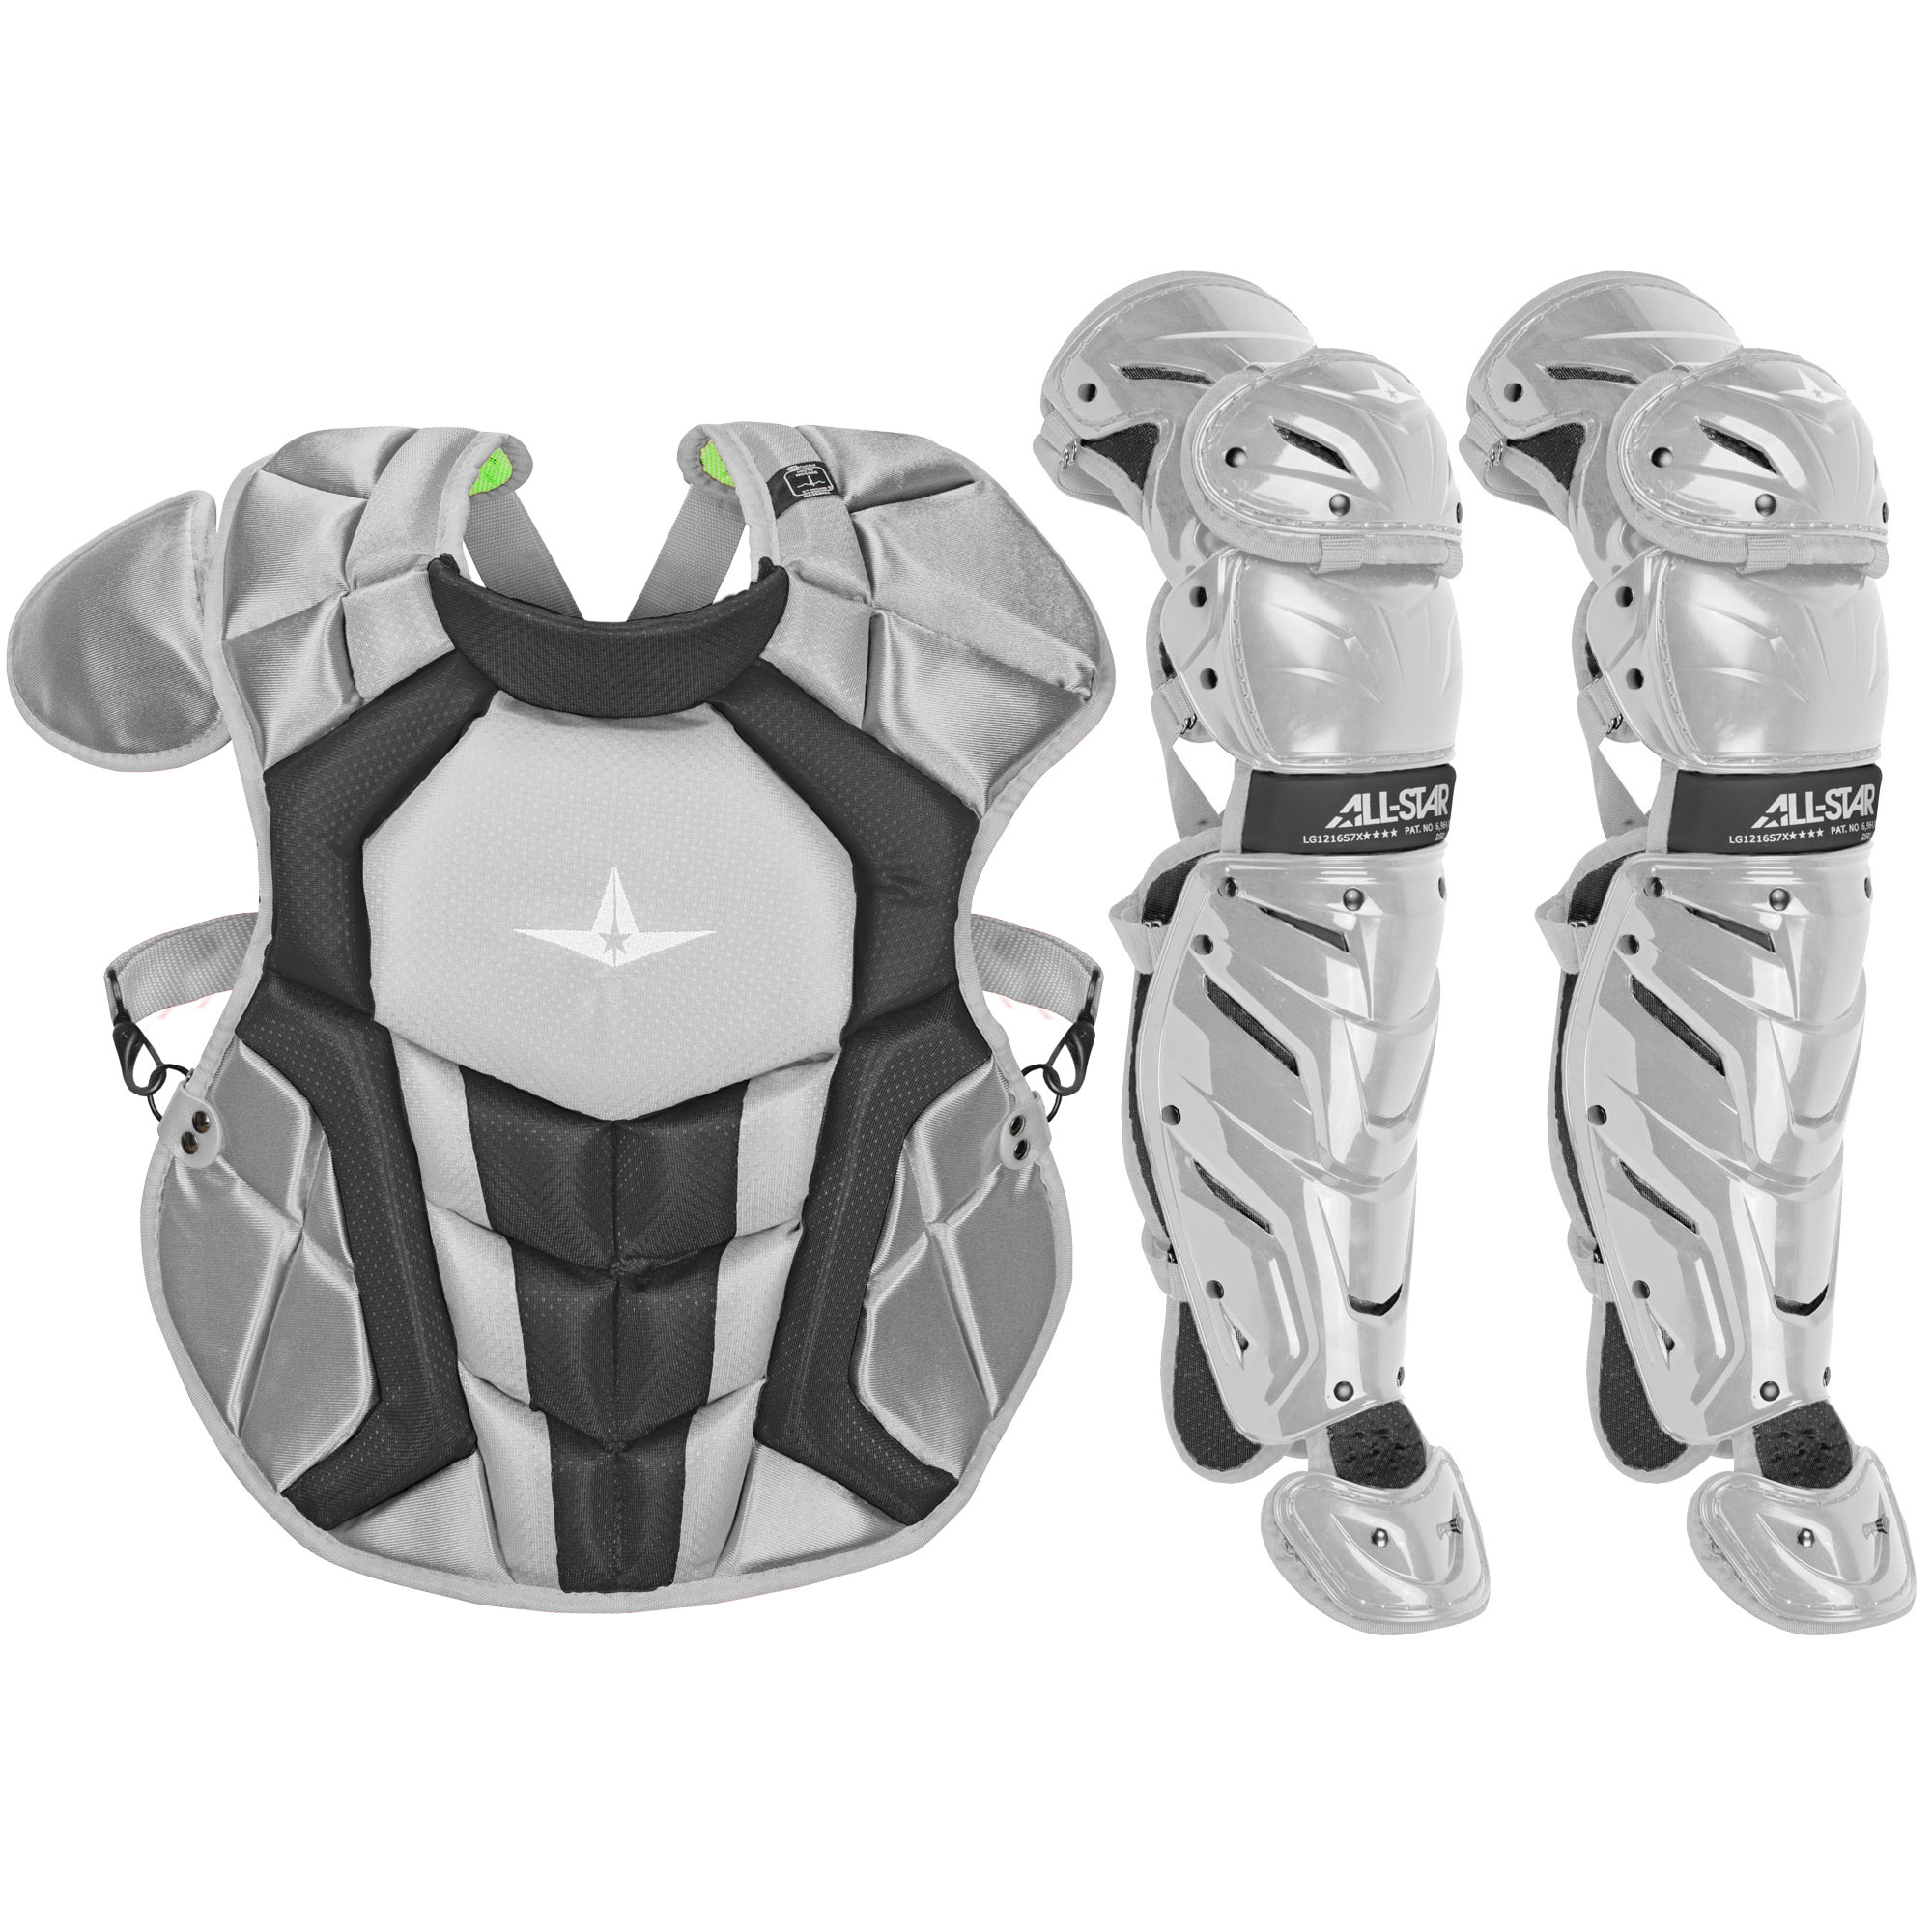 All-Star System7 Axis NOCSAE Youth Baseball Catcher's Gear Set